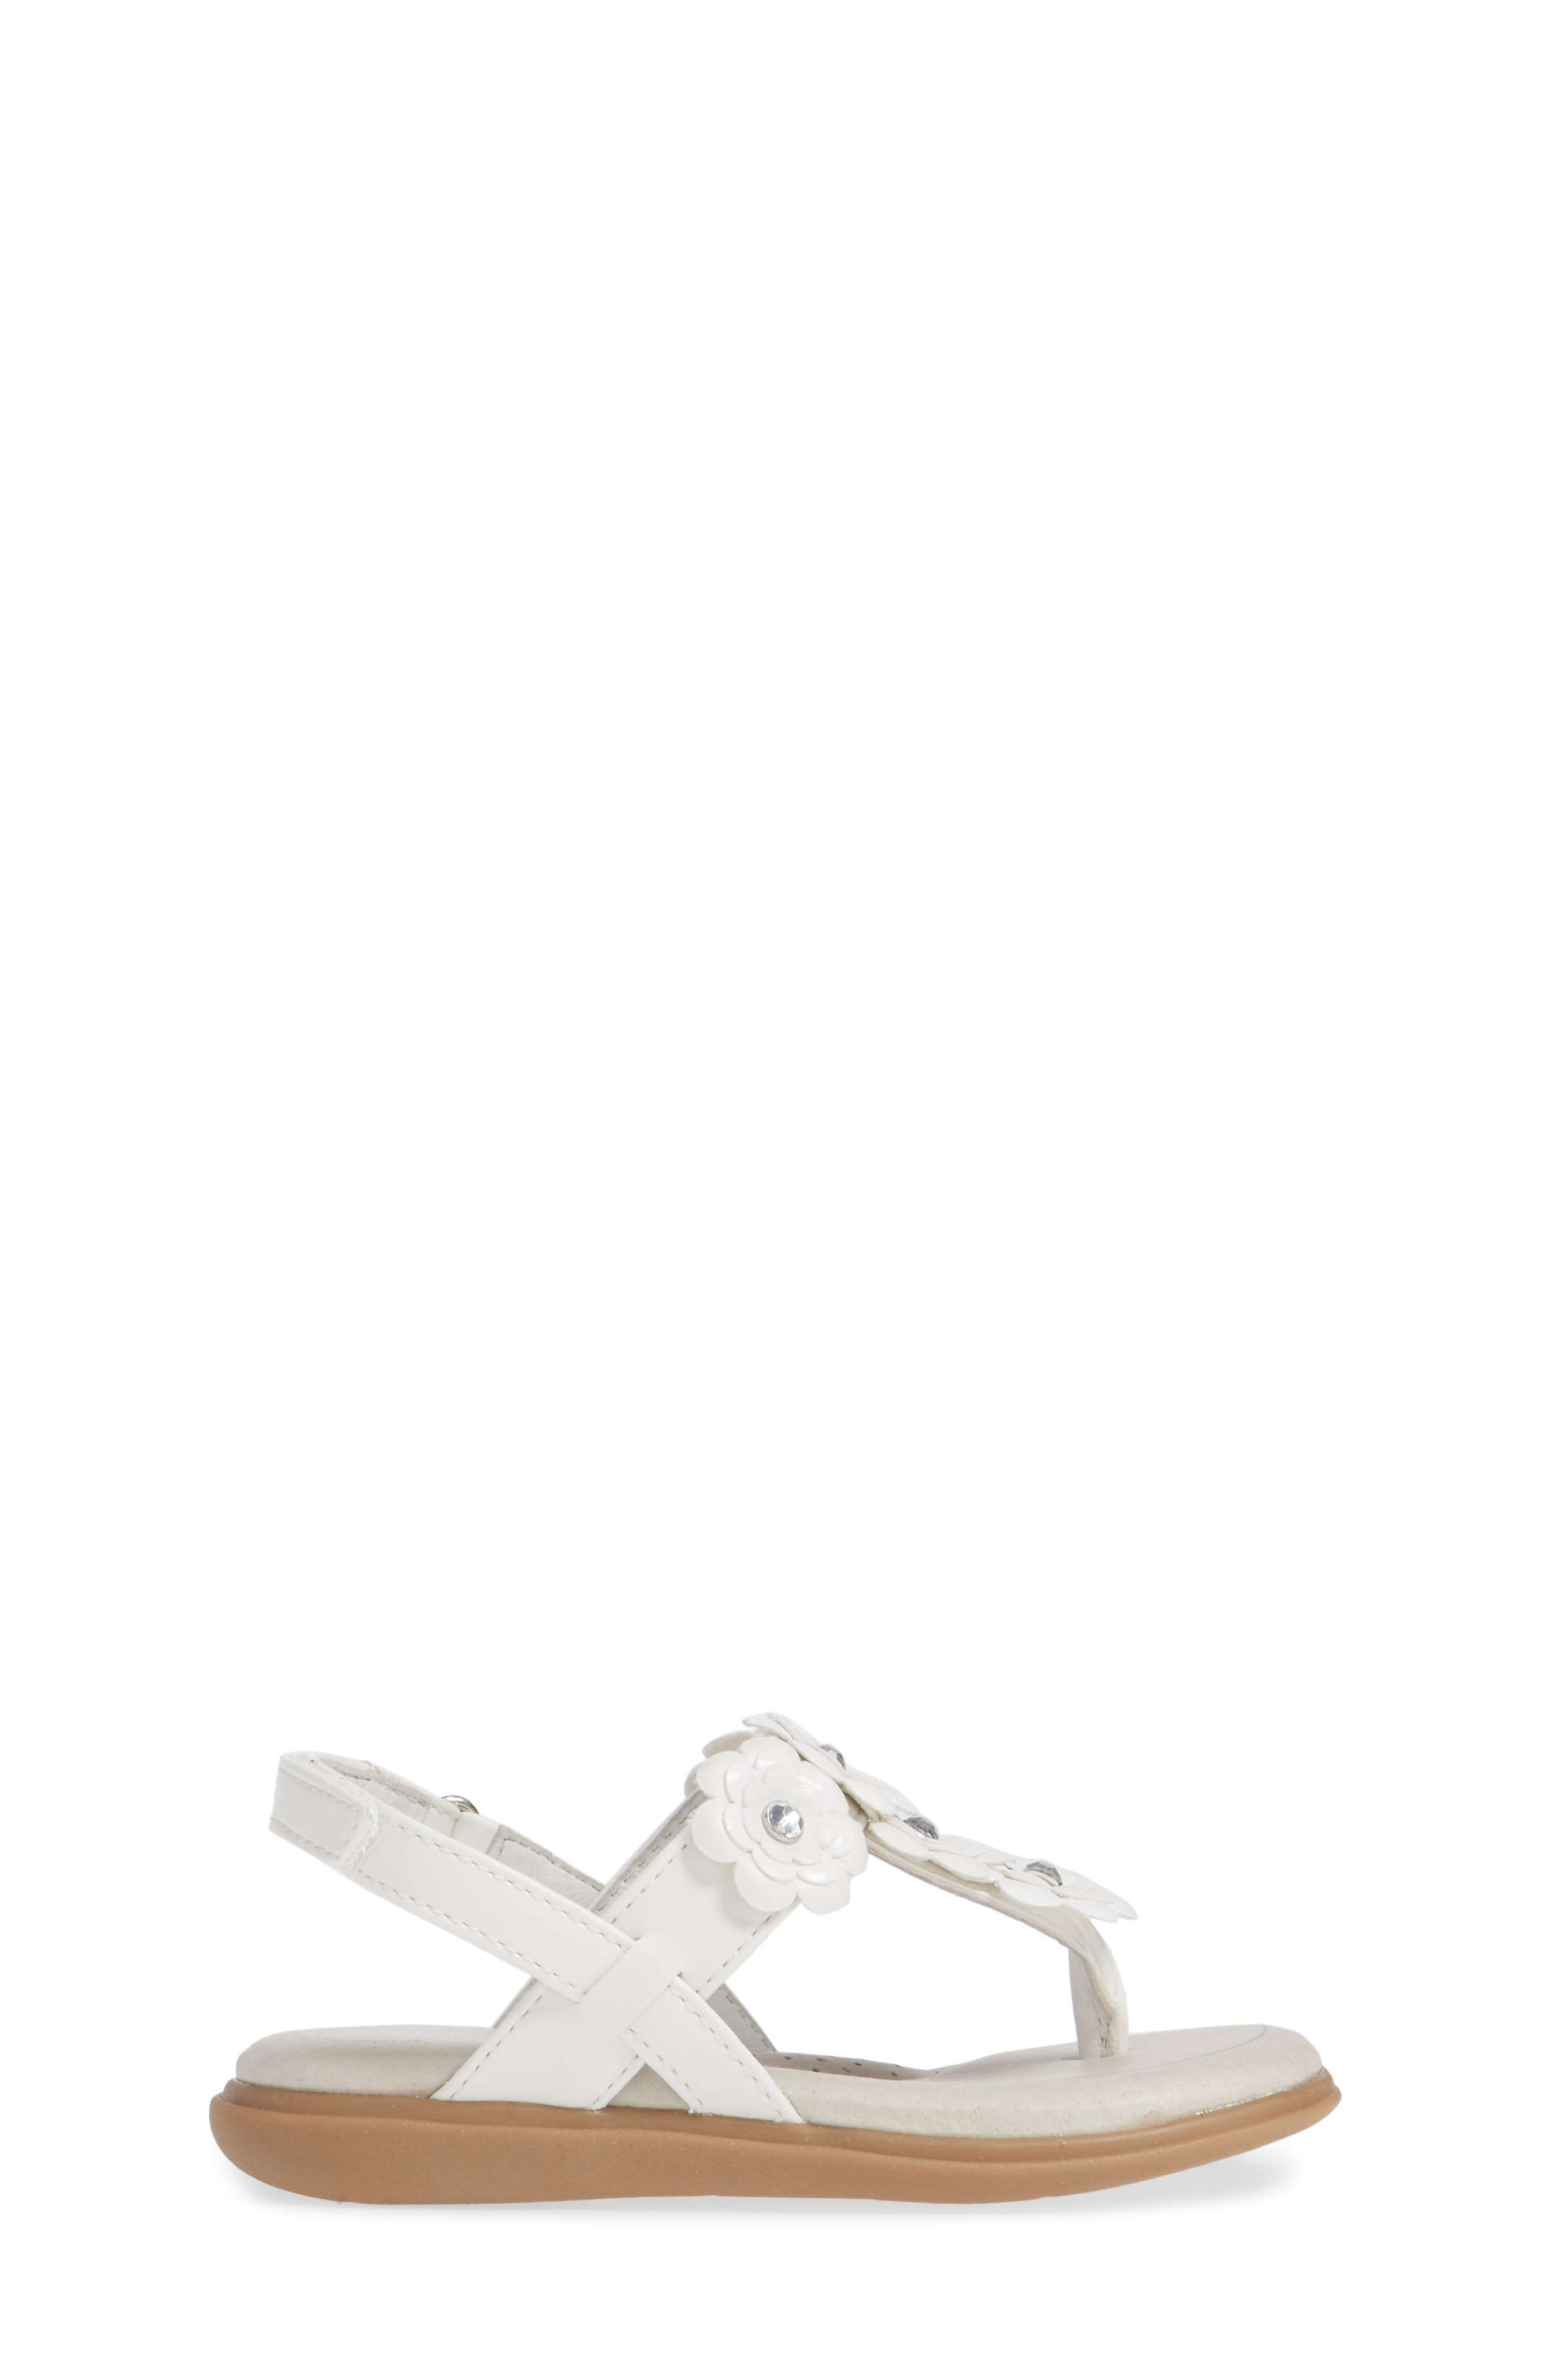 SOLE PLAY, Cora Floral Embellished Sandal, Alternate thumbnail 3, color, WHITE